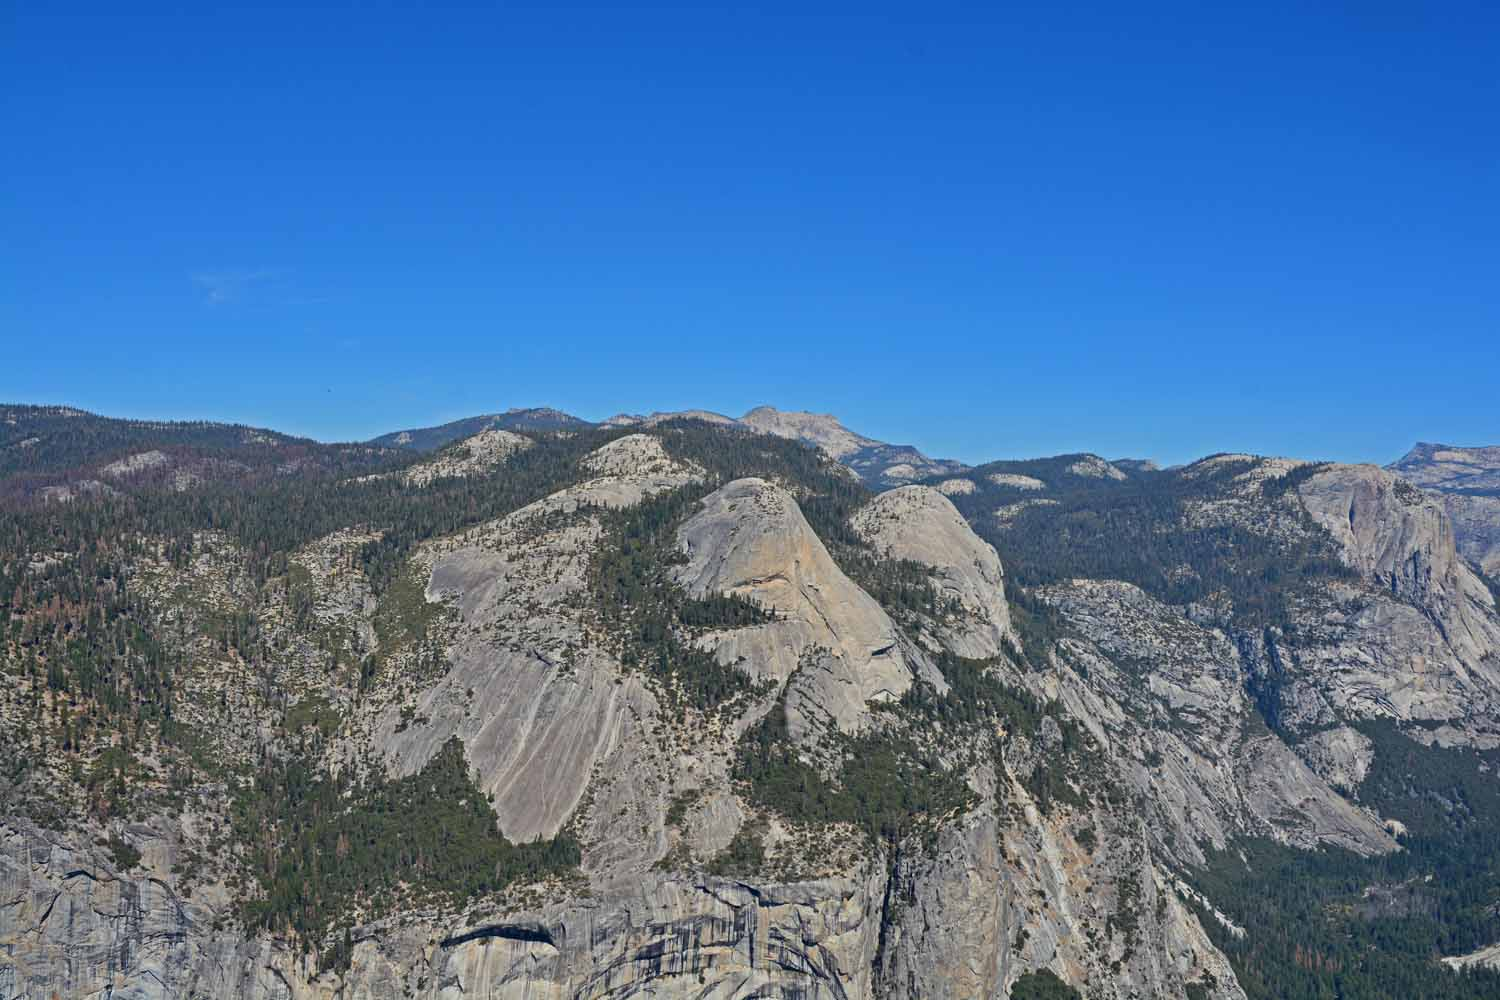 View from Glacier Point looking across the top of the mountains.